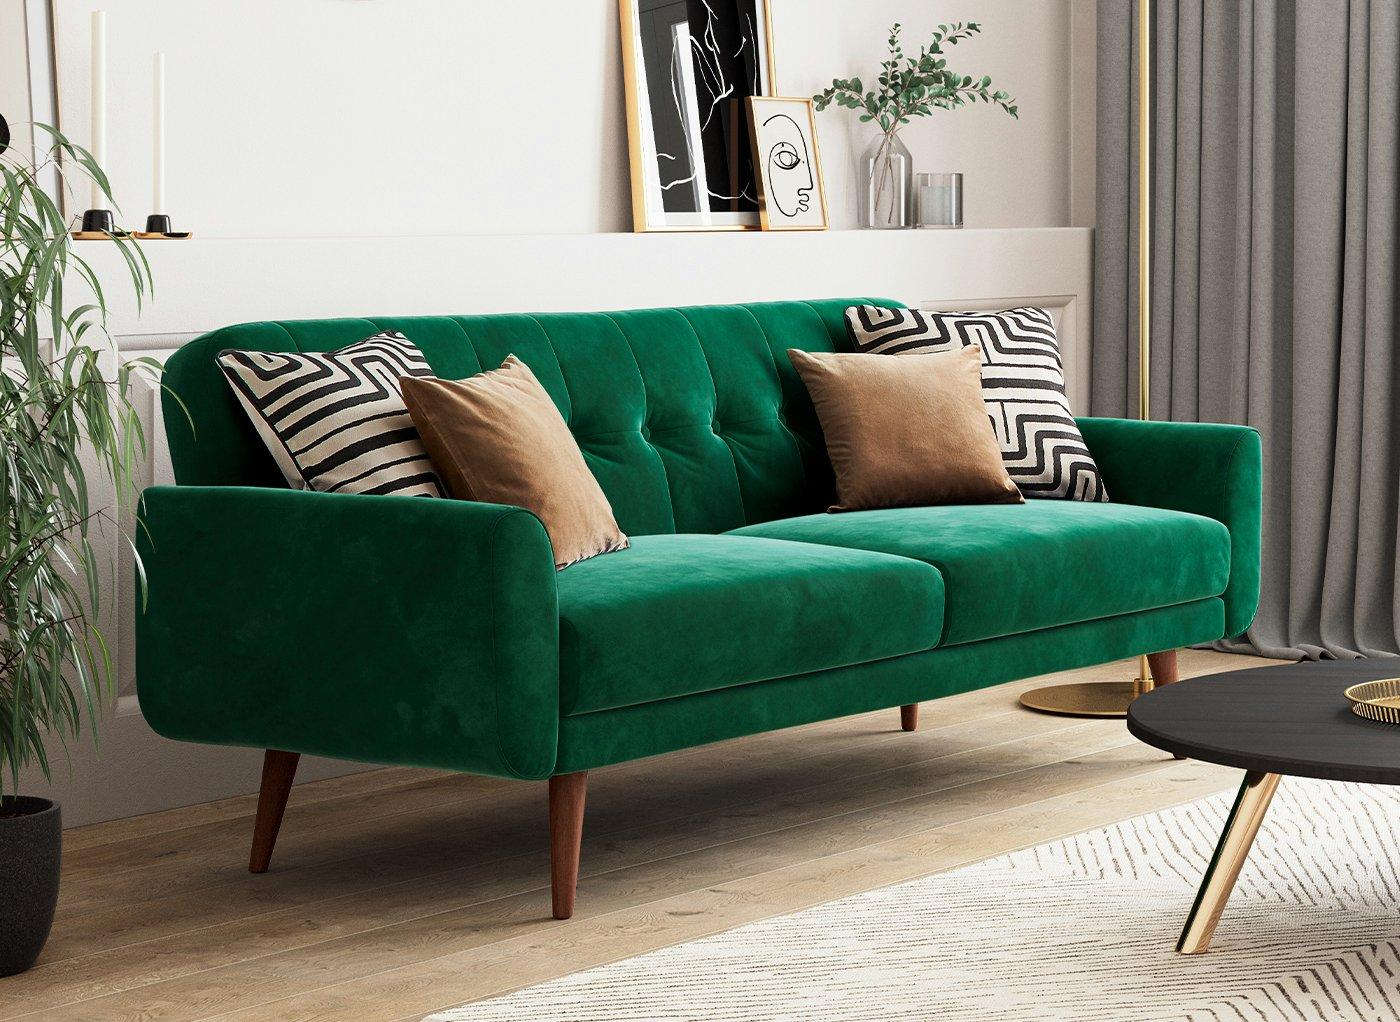 Gallway 3 Seater Sofa Bed Forest Green Velvet Bed Sava